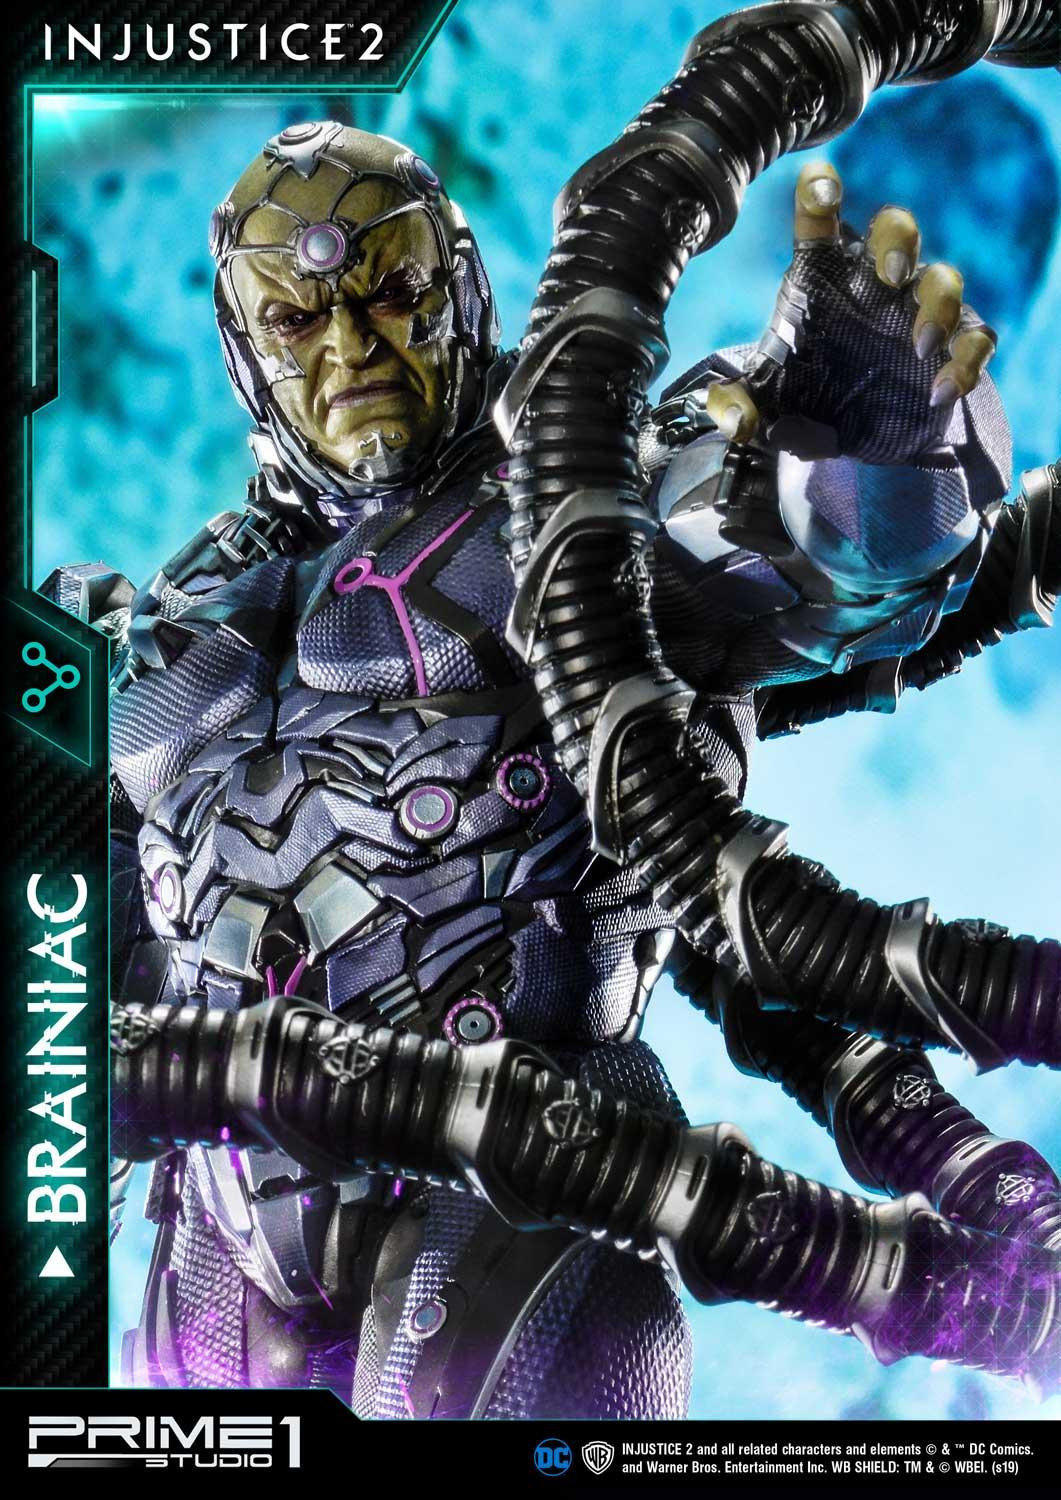 Prime 1 Studio's Injustice 2 Brainiac Statue